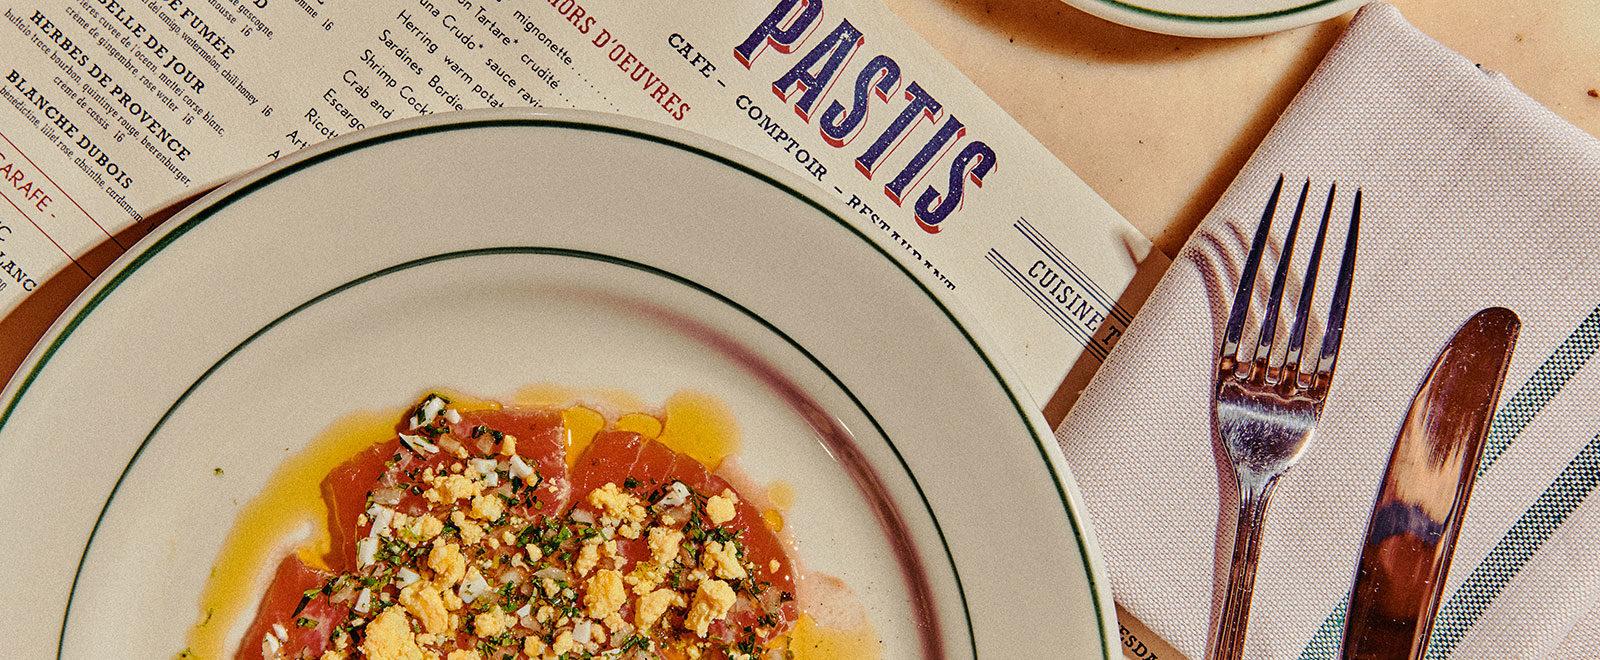 Pastis Restaurant West Village New York